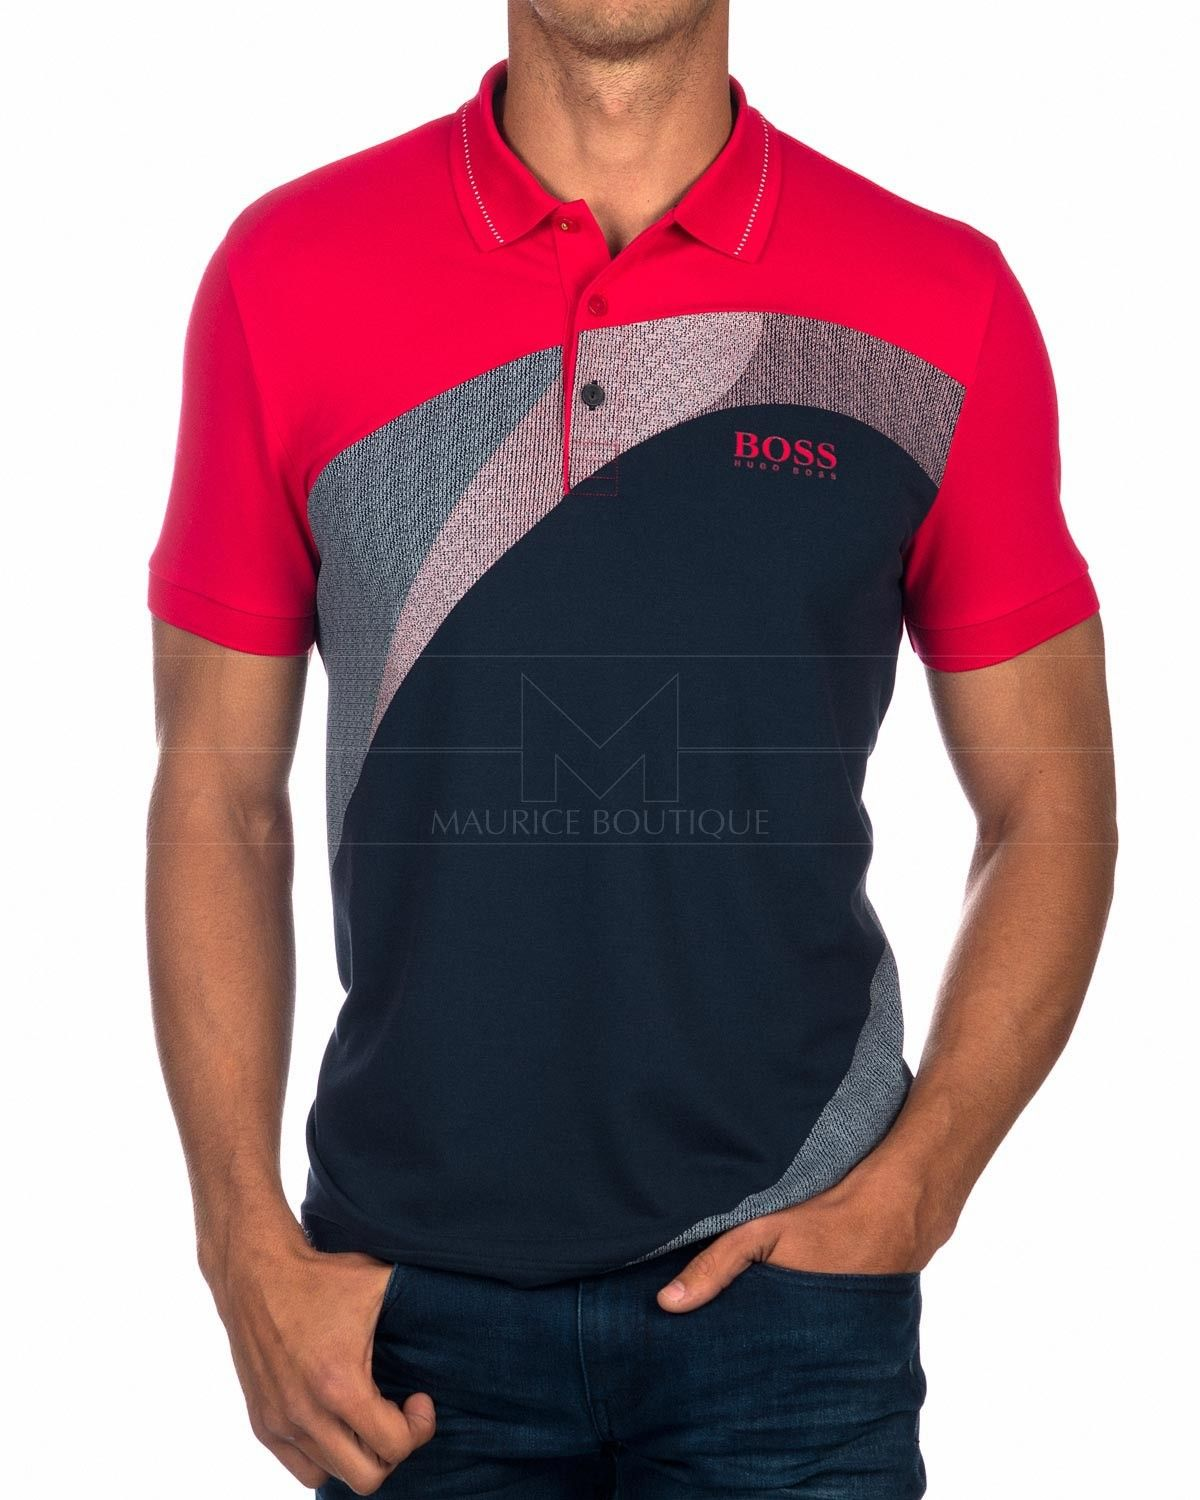 e377838a1 Hugo Boss Polo shirt White Paddy Martin Kaymer | mentips | Polo ...